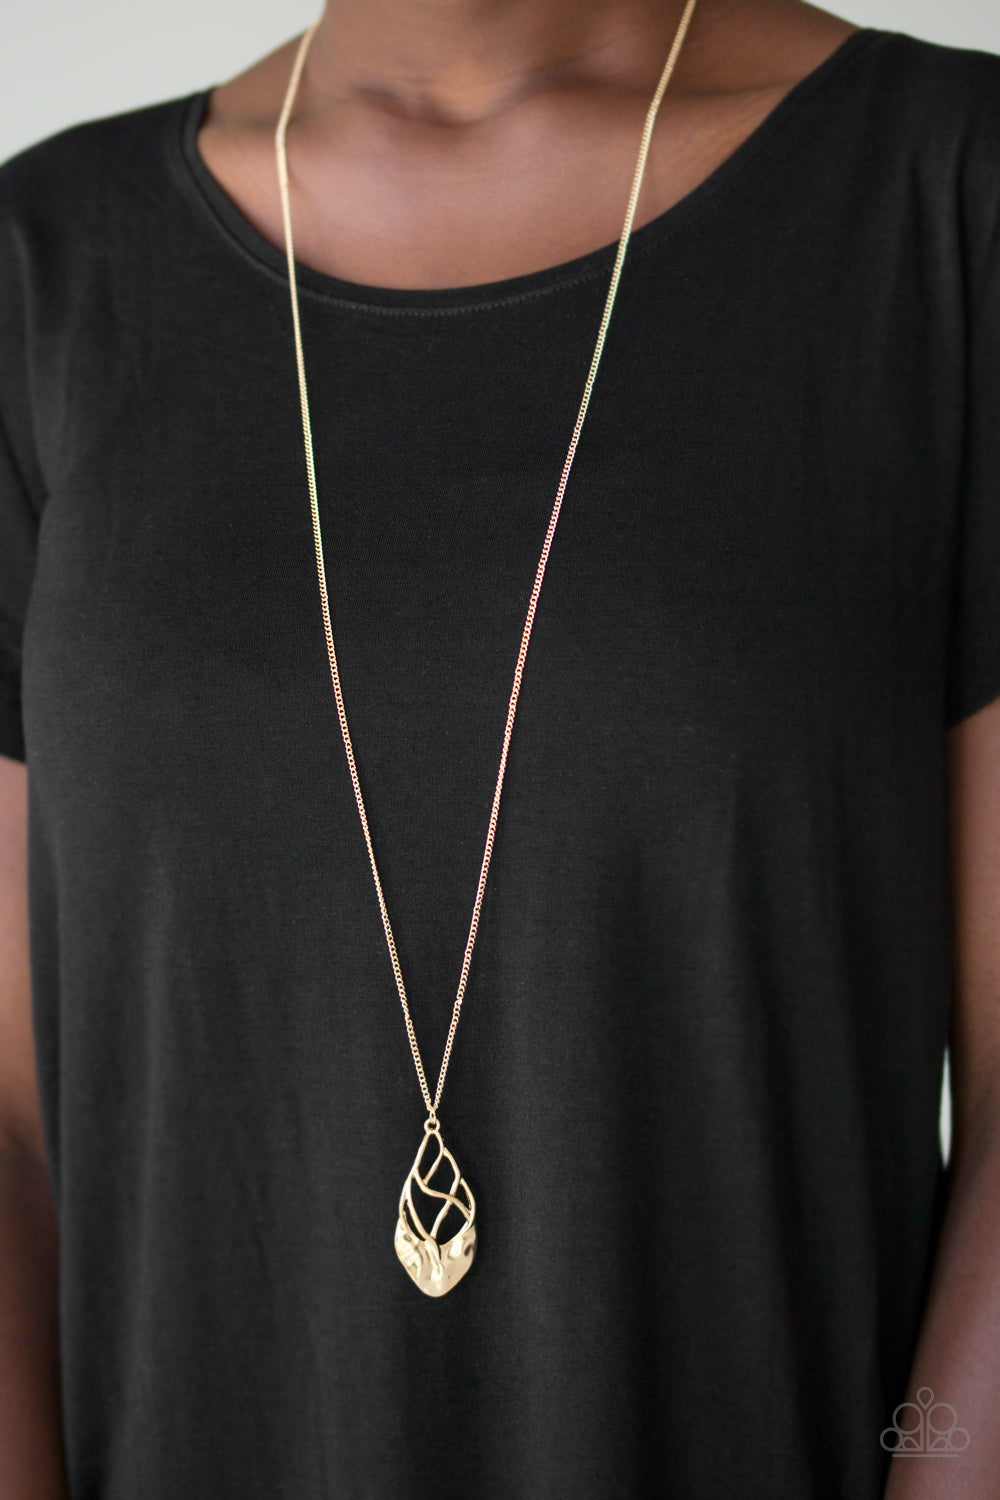 Swank Bank - Gold Paparazzi Necklace - Pink Dragon Jewels